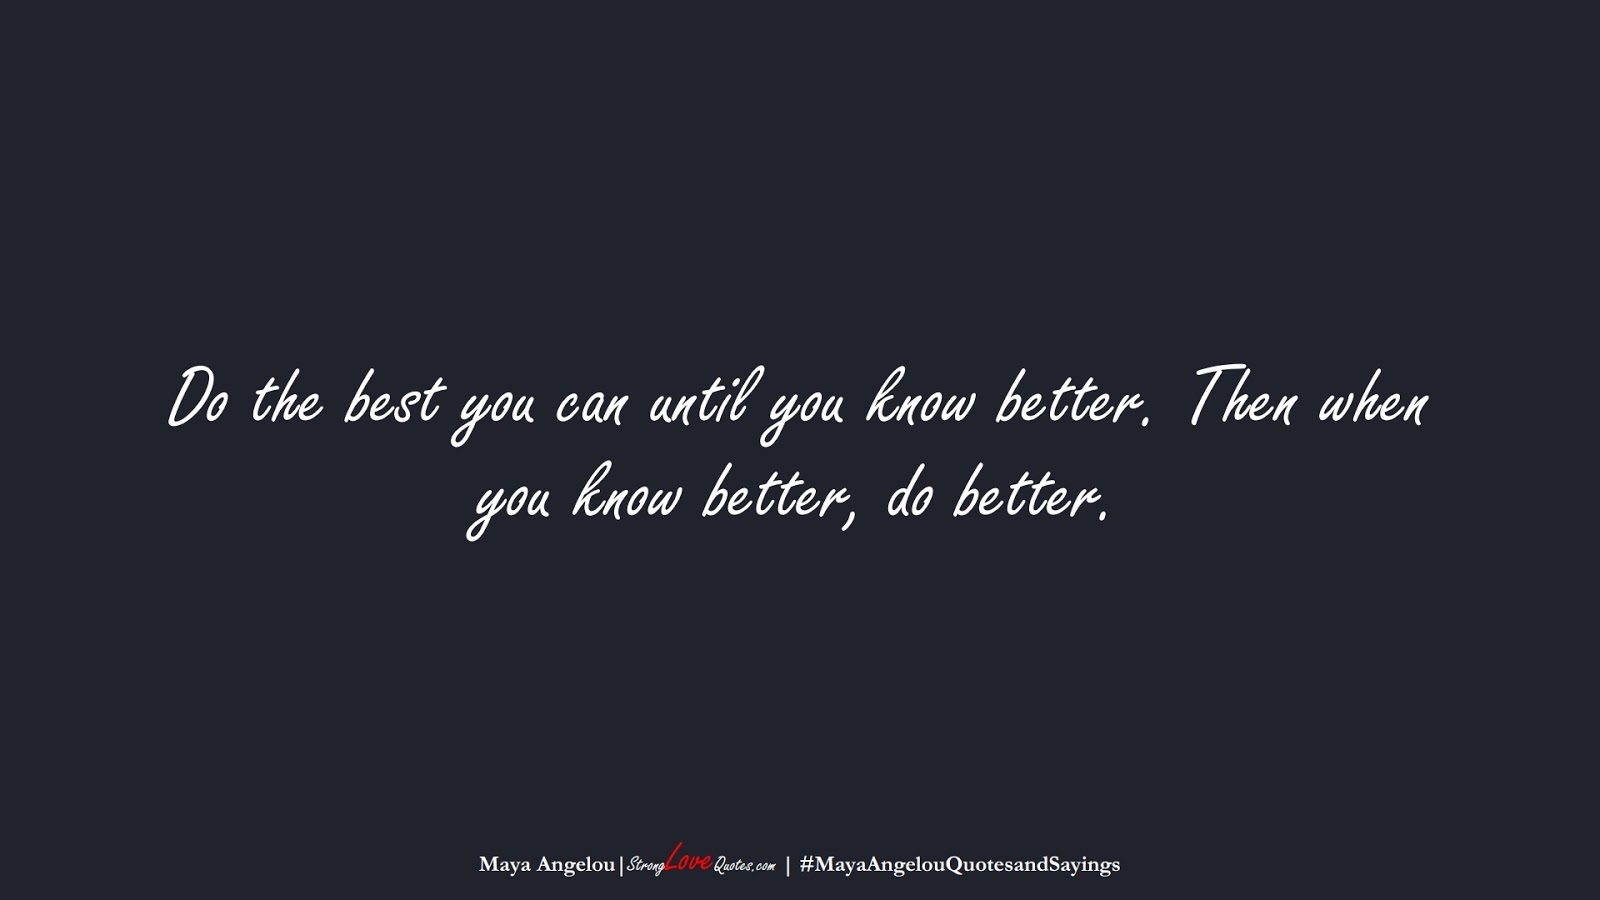 Do the best you can until you know better. Then when you know better, do better. (Maya Angelou);  #MayaAngelouQuotesandSayings